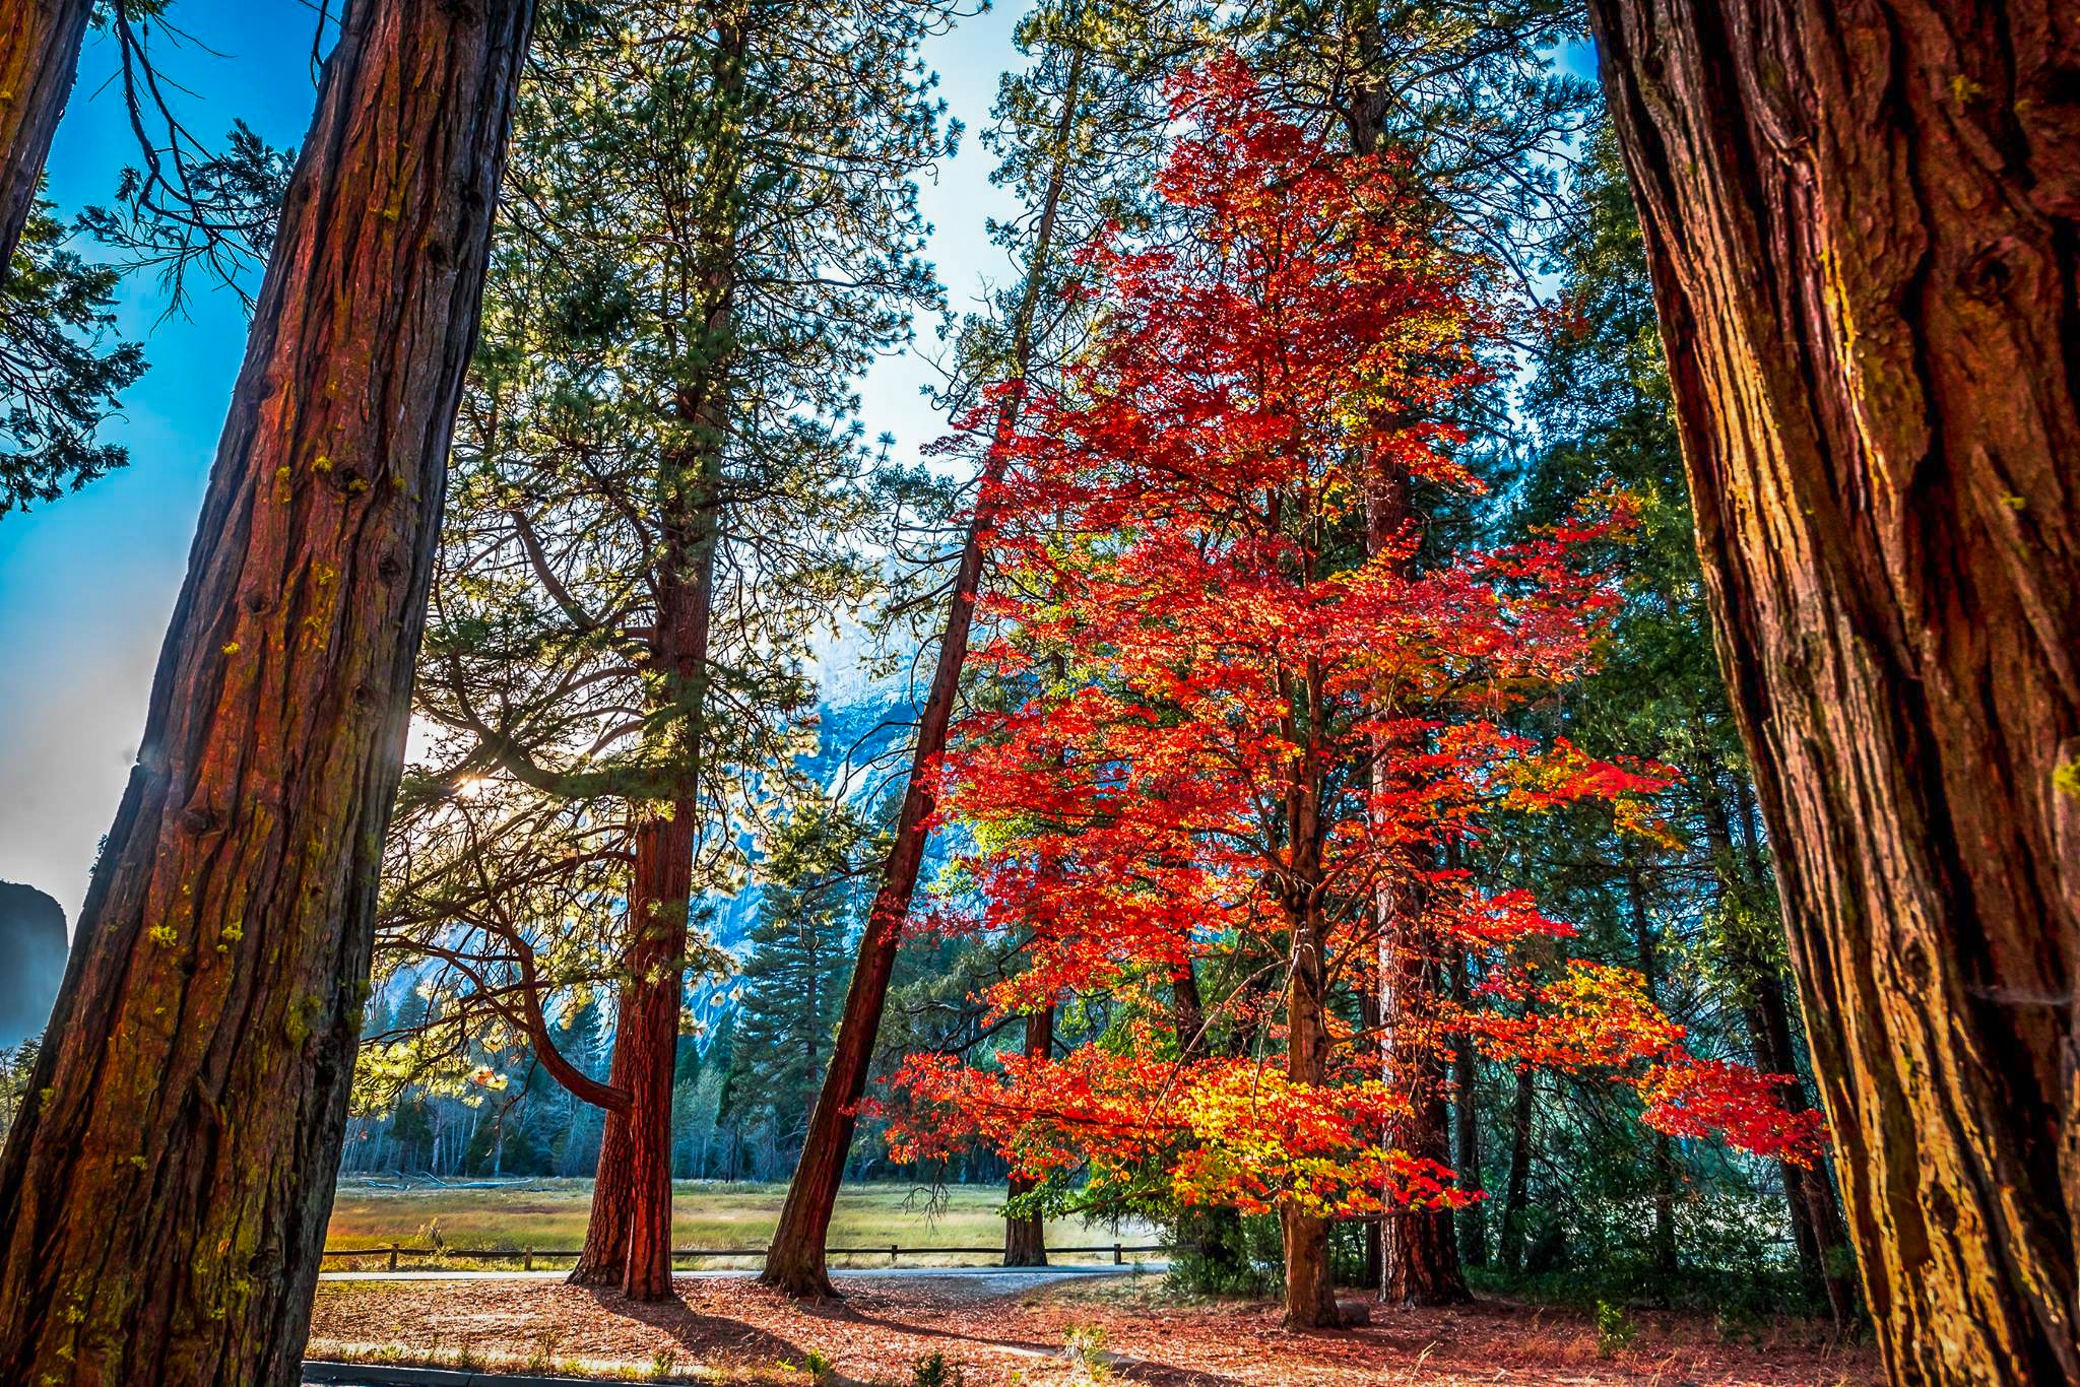 Fall Foliage Wallpaper Widescreen Autumn Tree In Redwood Forest Hd Wallpaper Background